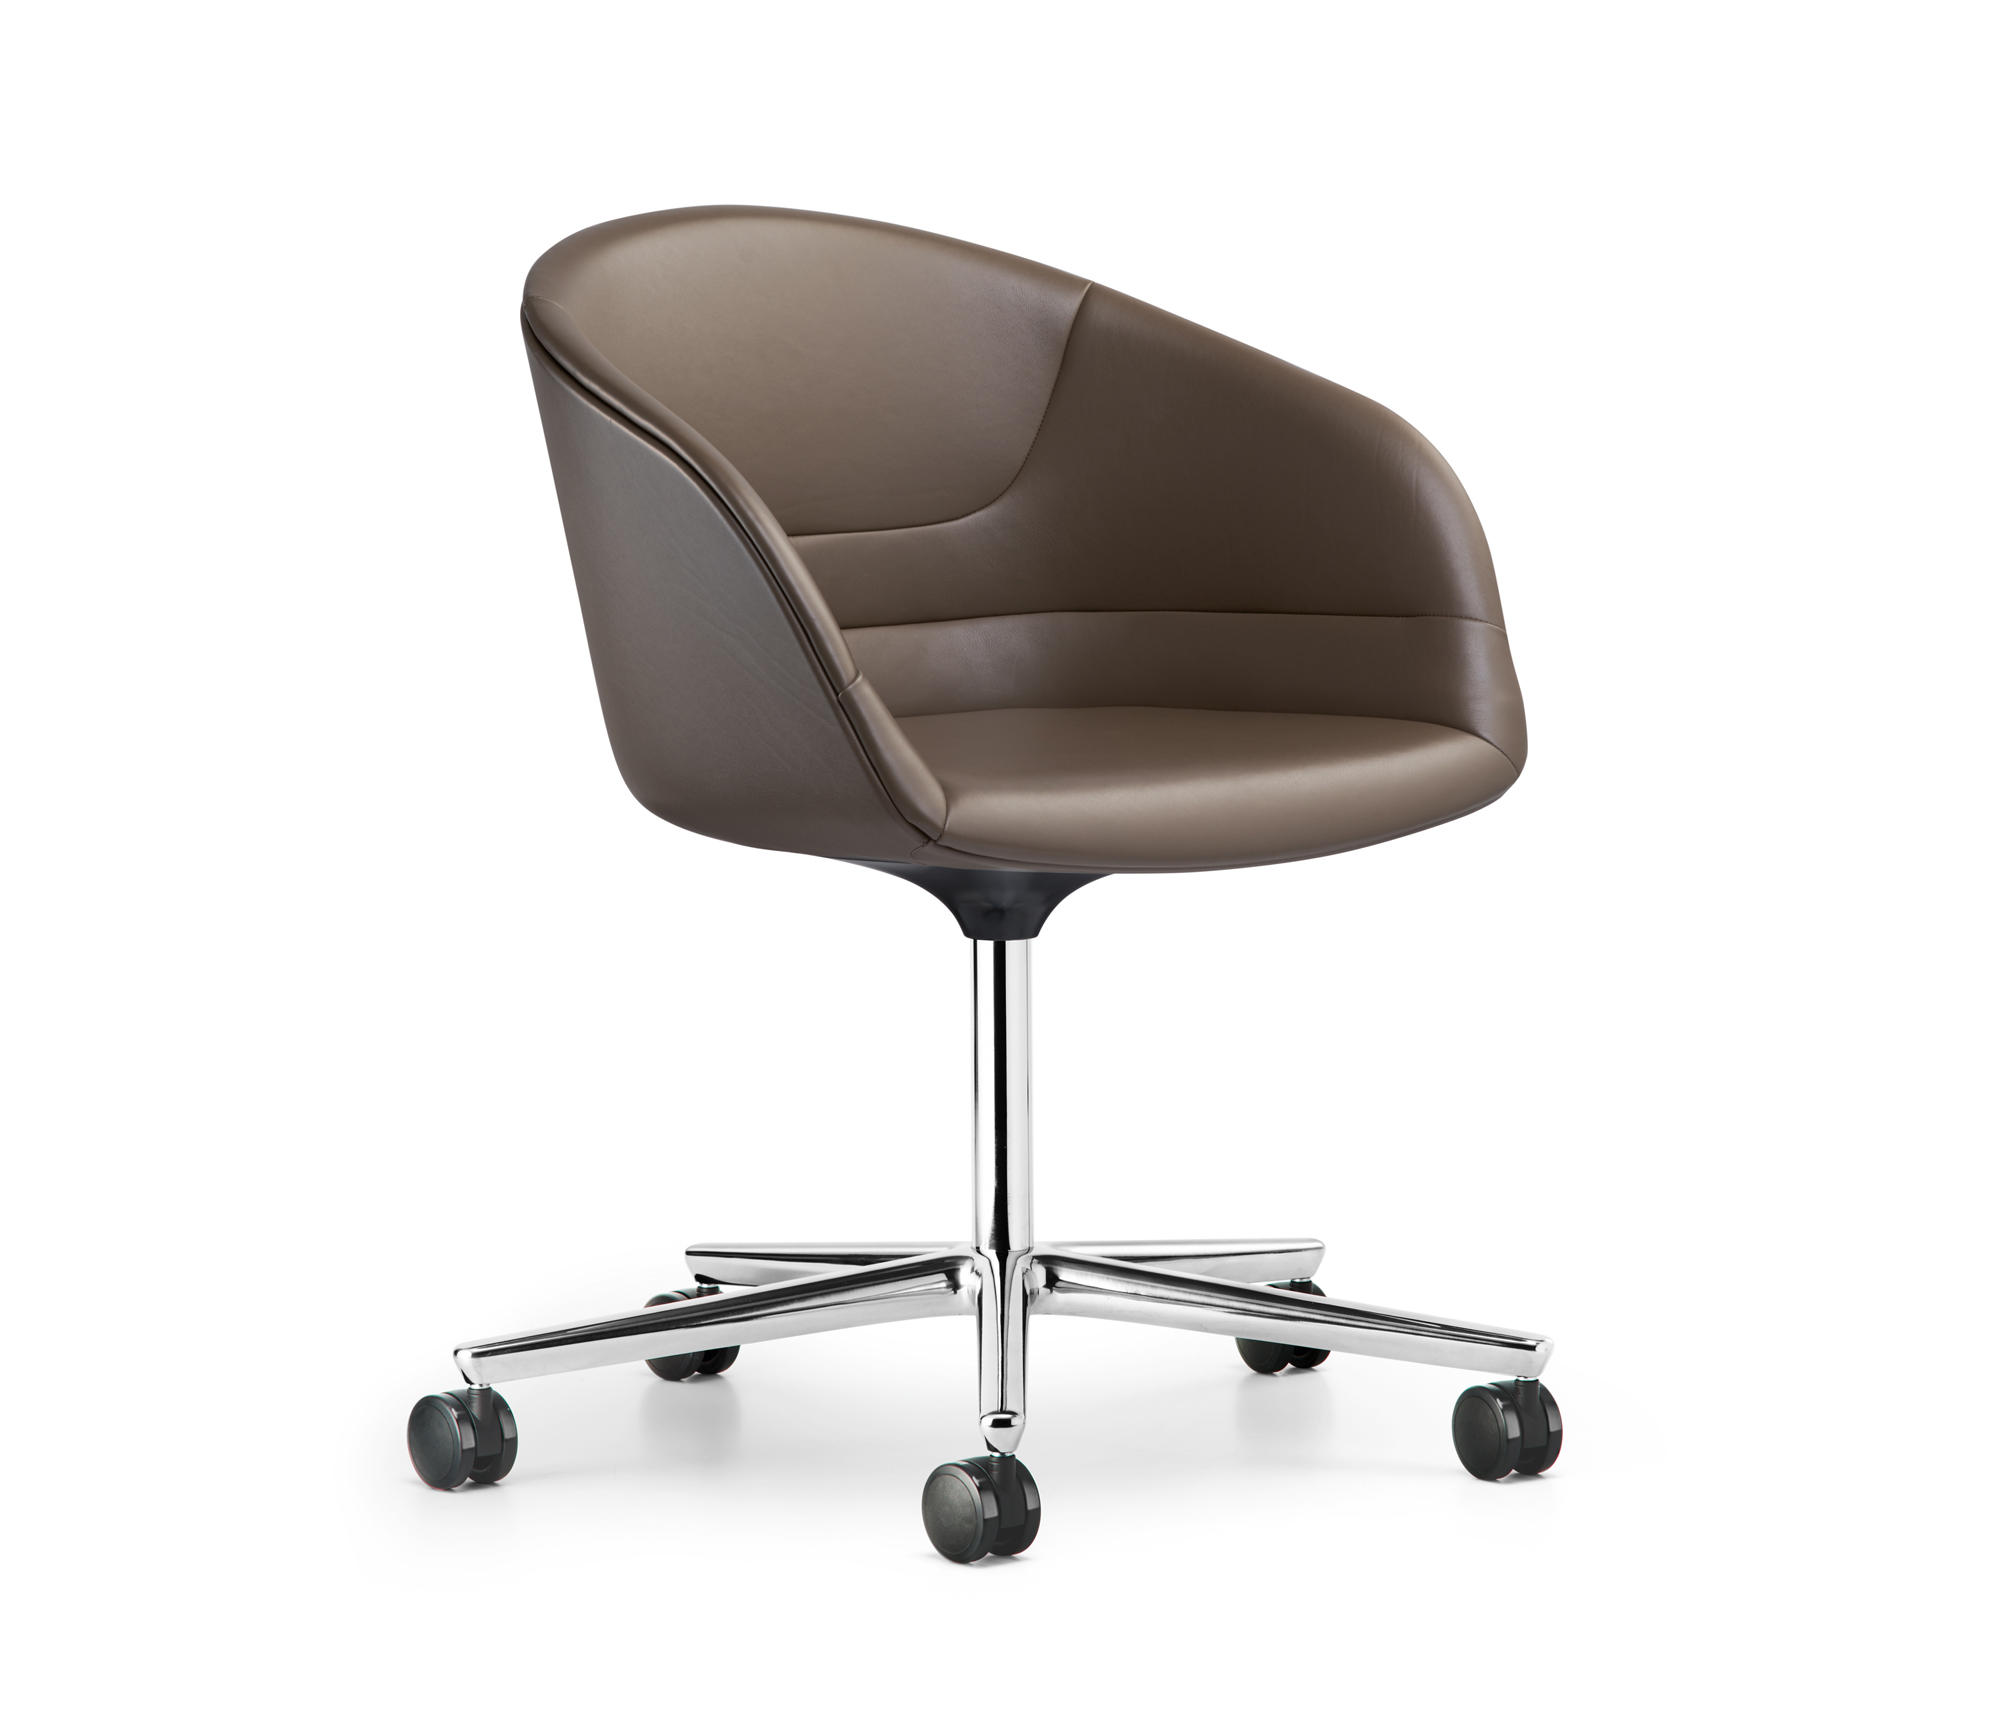 KYO BUCKET SEATS - Chairs from Walter K. | Architonic